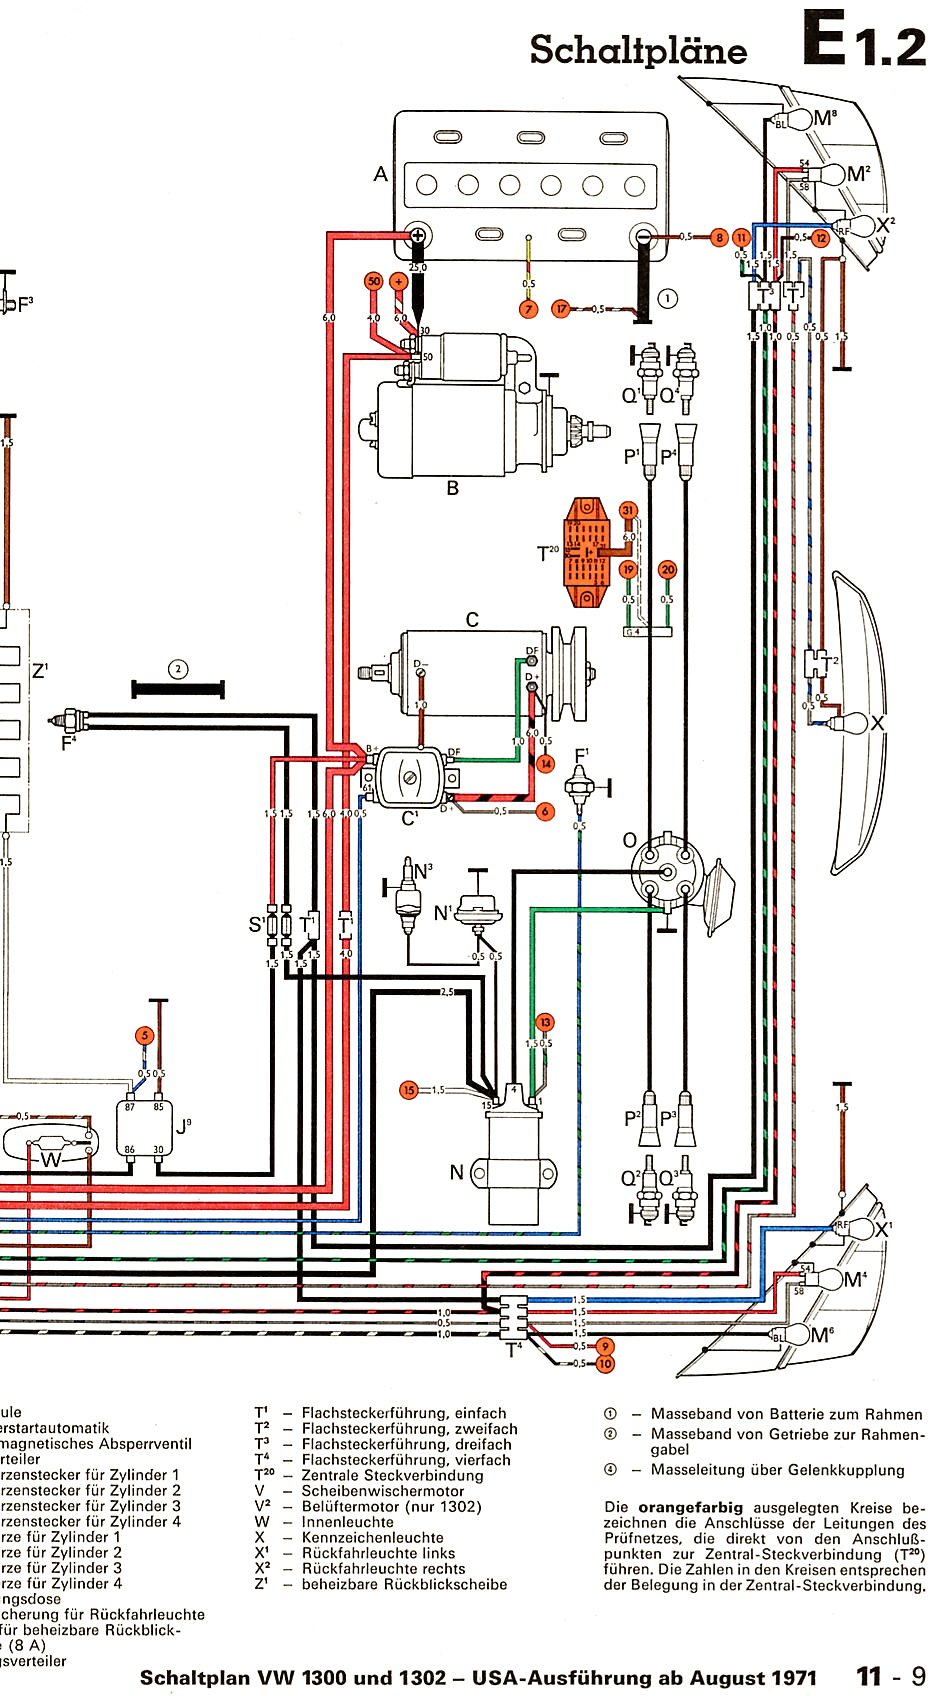 1300_and_1302_USA_from_August_1971 2 73 super beetle voltage regulator shoptalkforums com 1972 vw beetle voltage regulator wiring diagram at bakdesigns.co